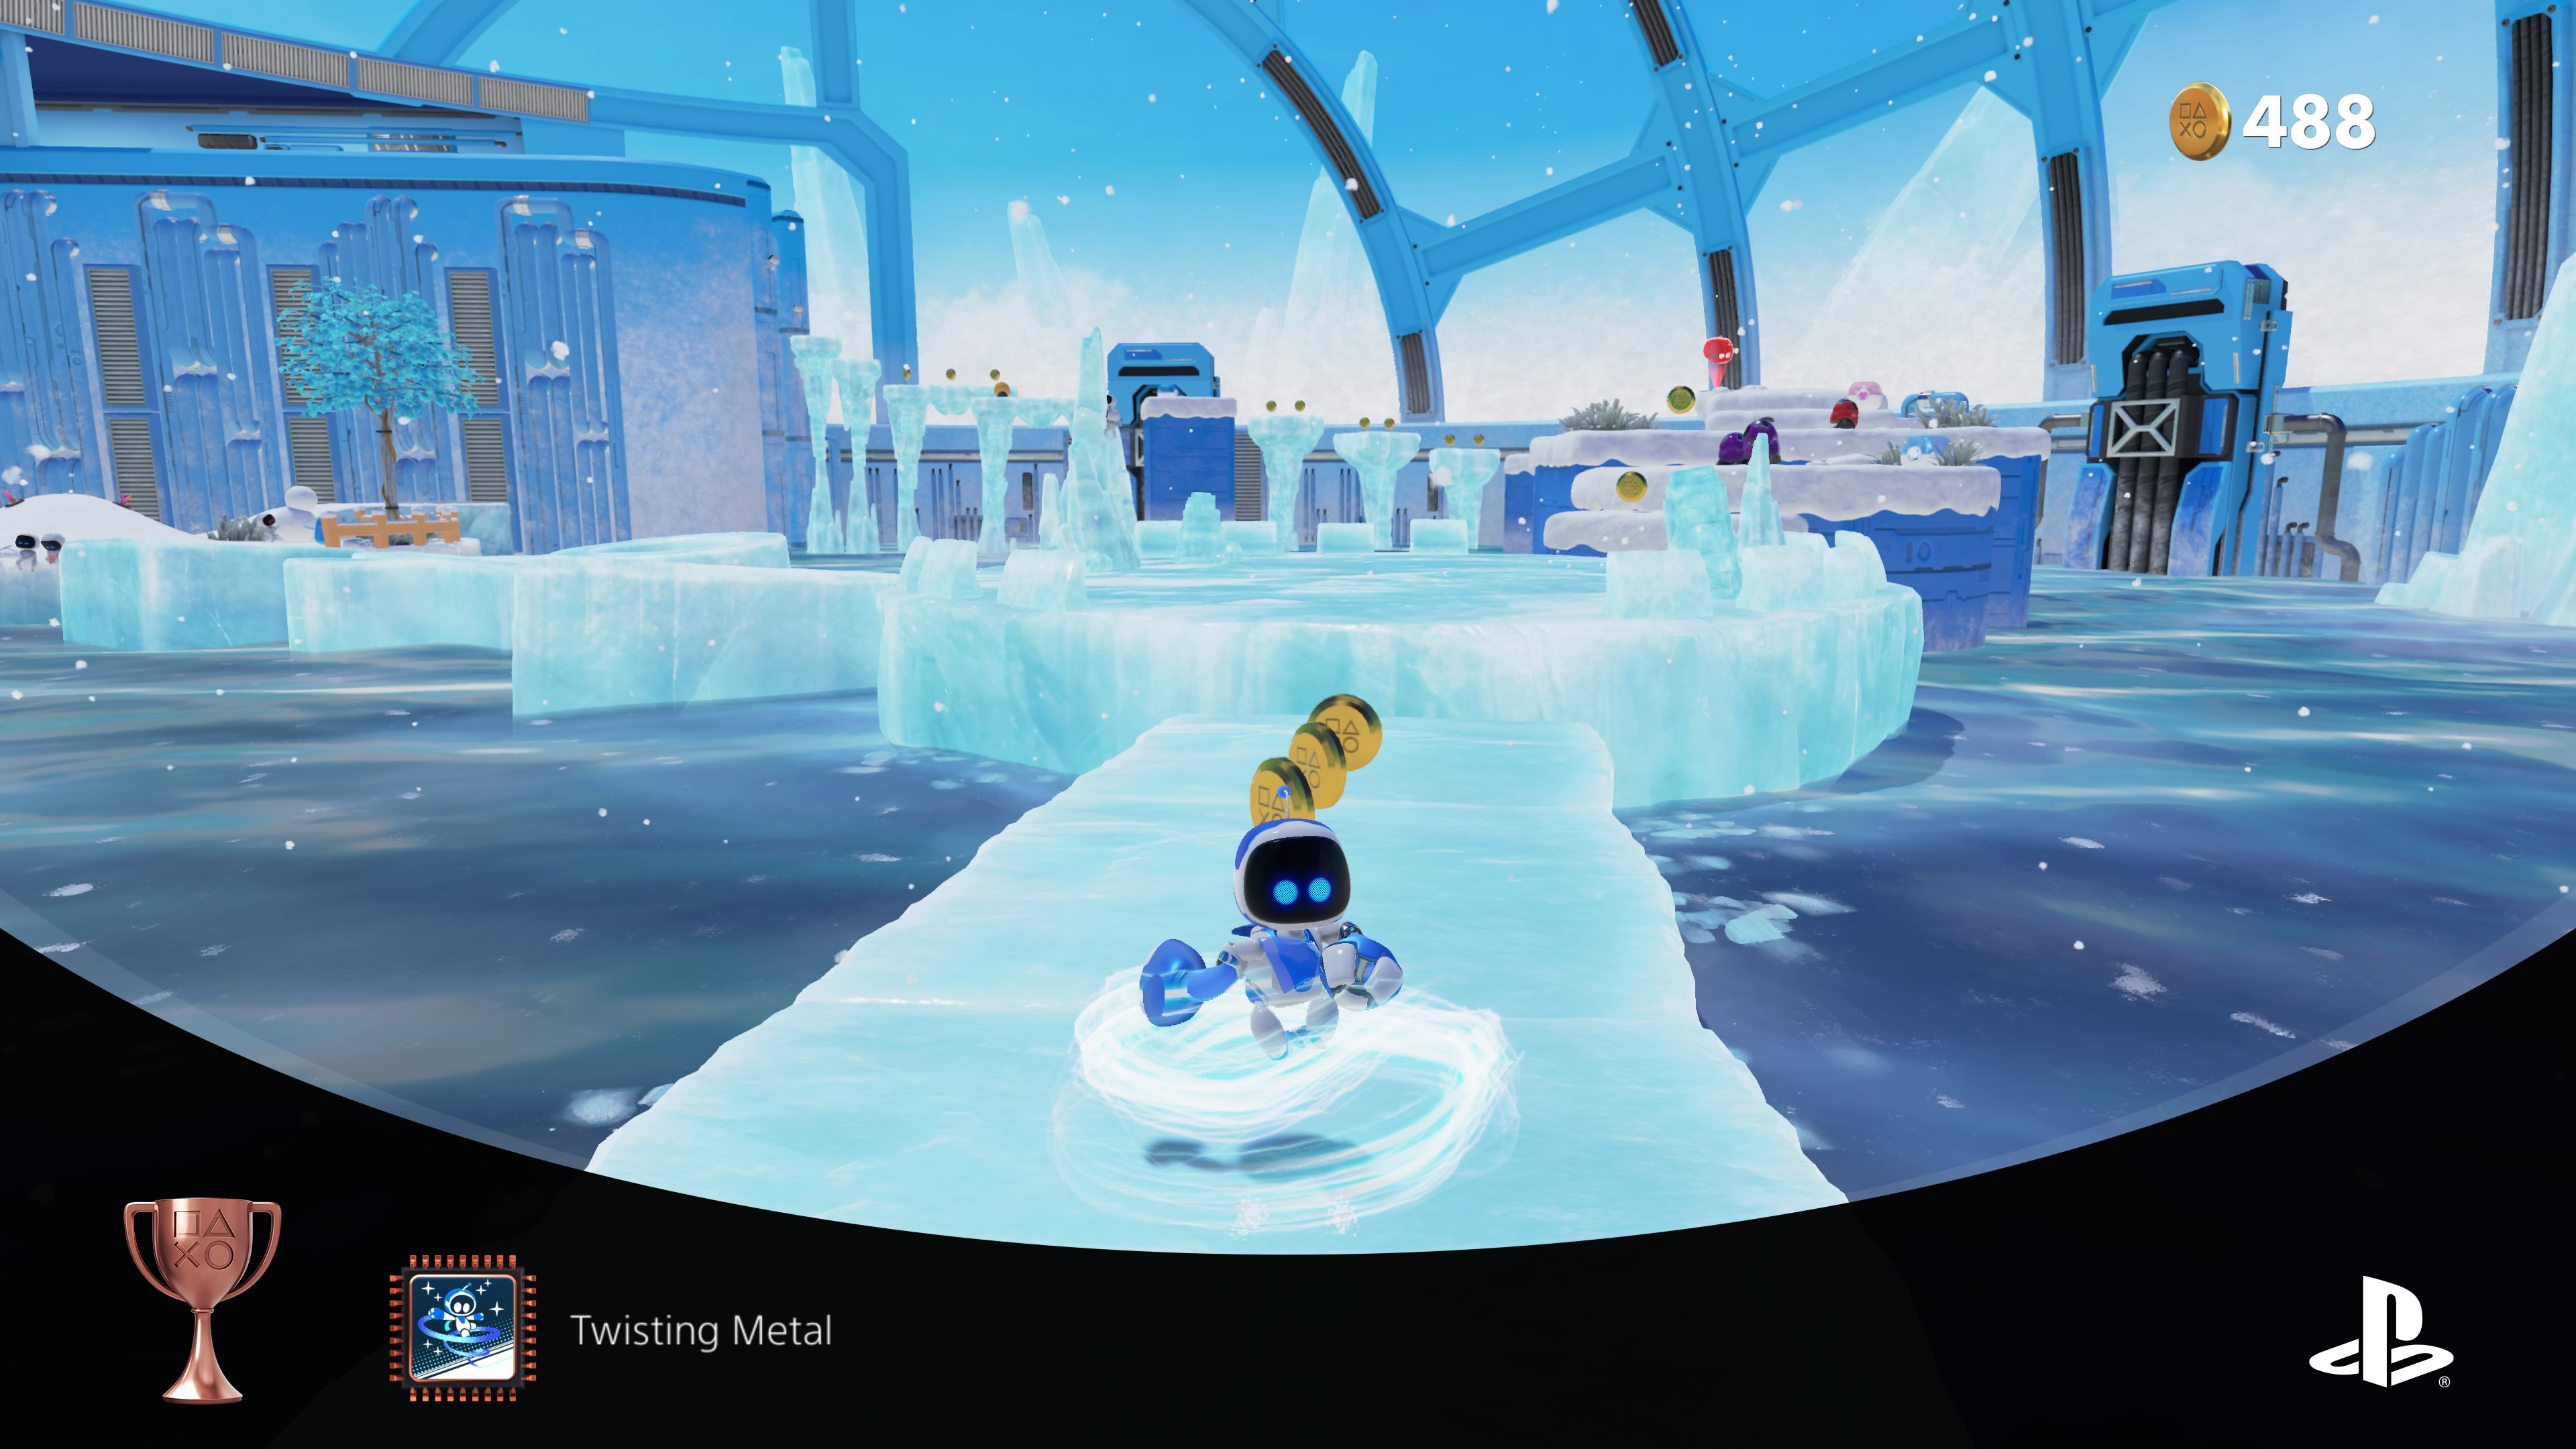 A screenshot of the game Astro's Playroom. It's a frozen level with ice blocks to walk on and freezing water below.